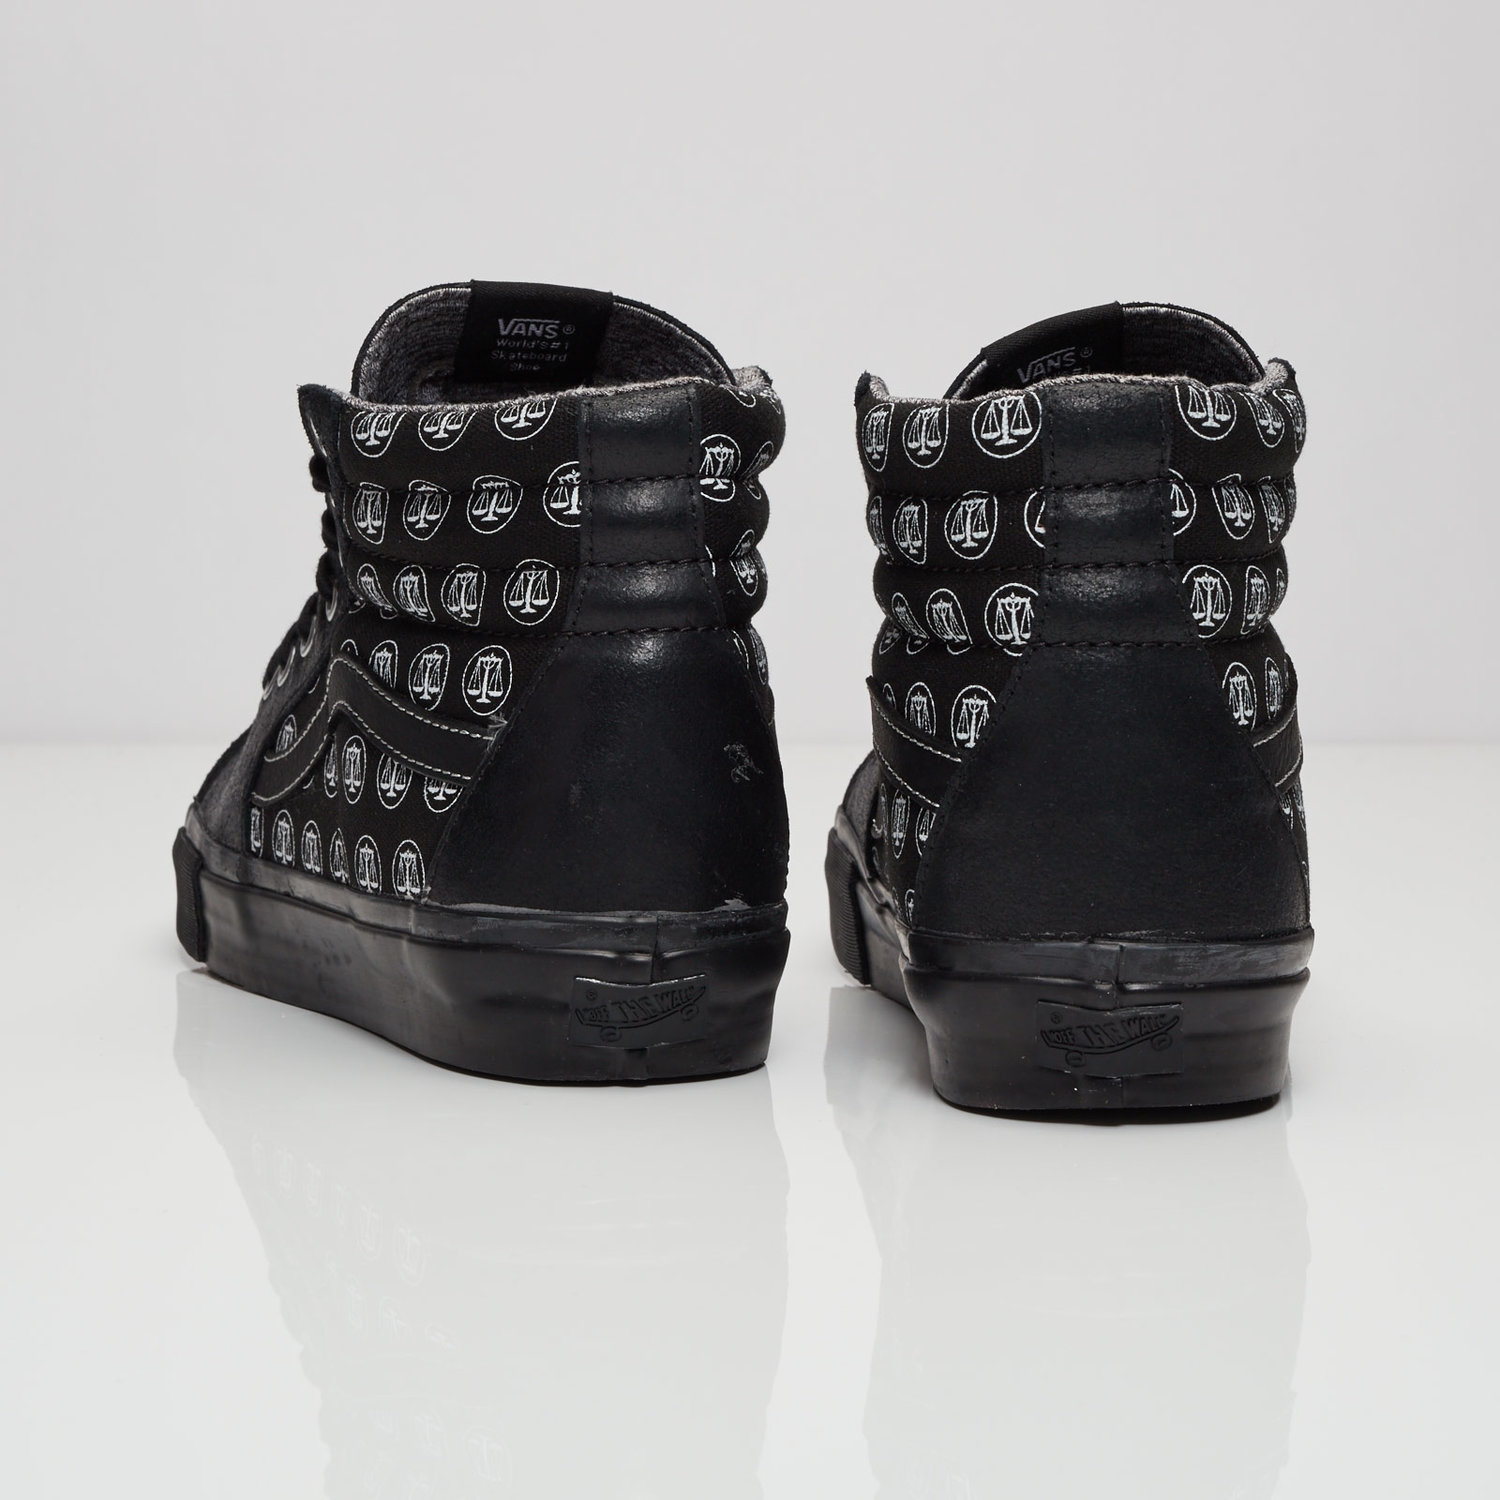 1e796390b8 Vault by Vans x Highs   Lows Old Skool Zip and Sk8 Hi LX — strictly ...